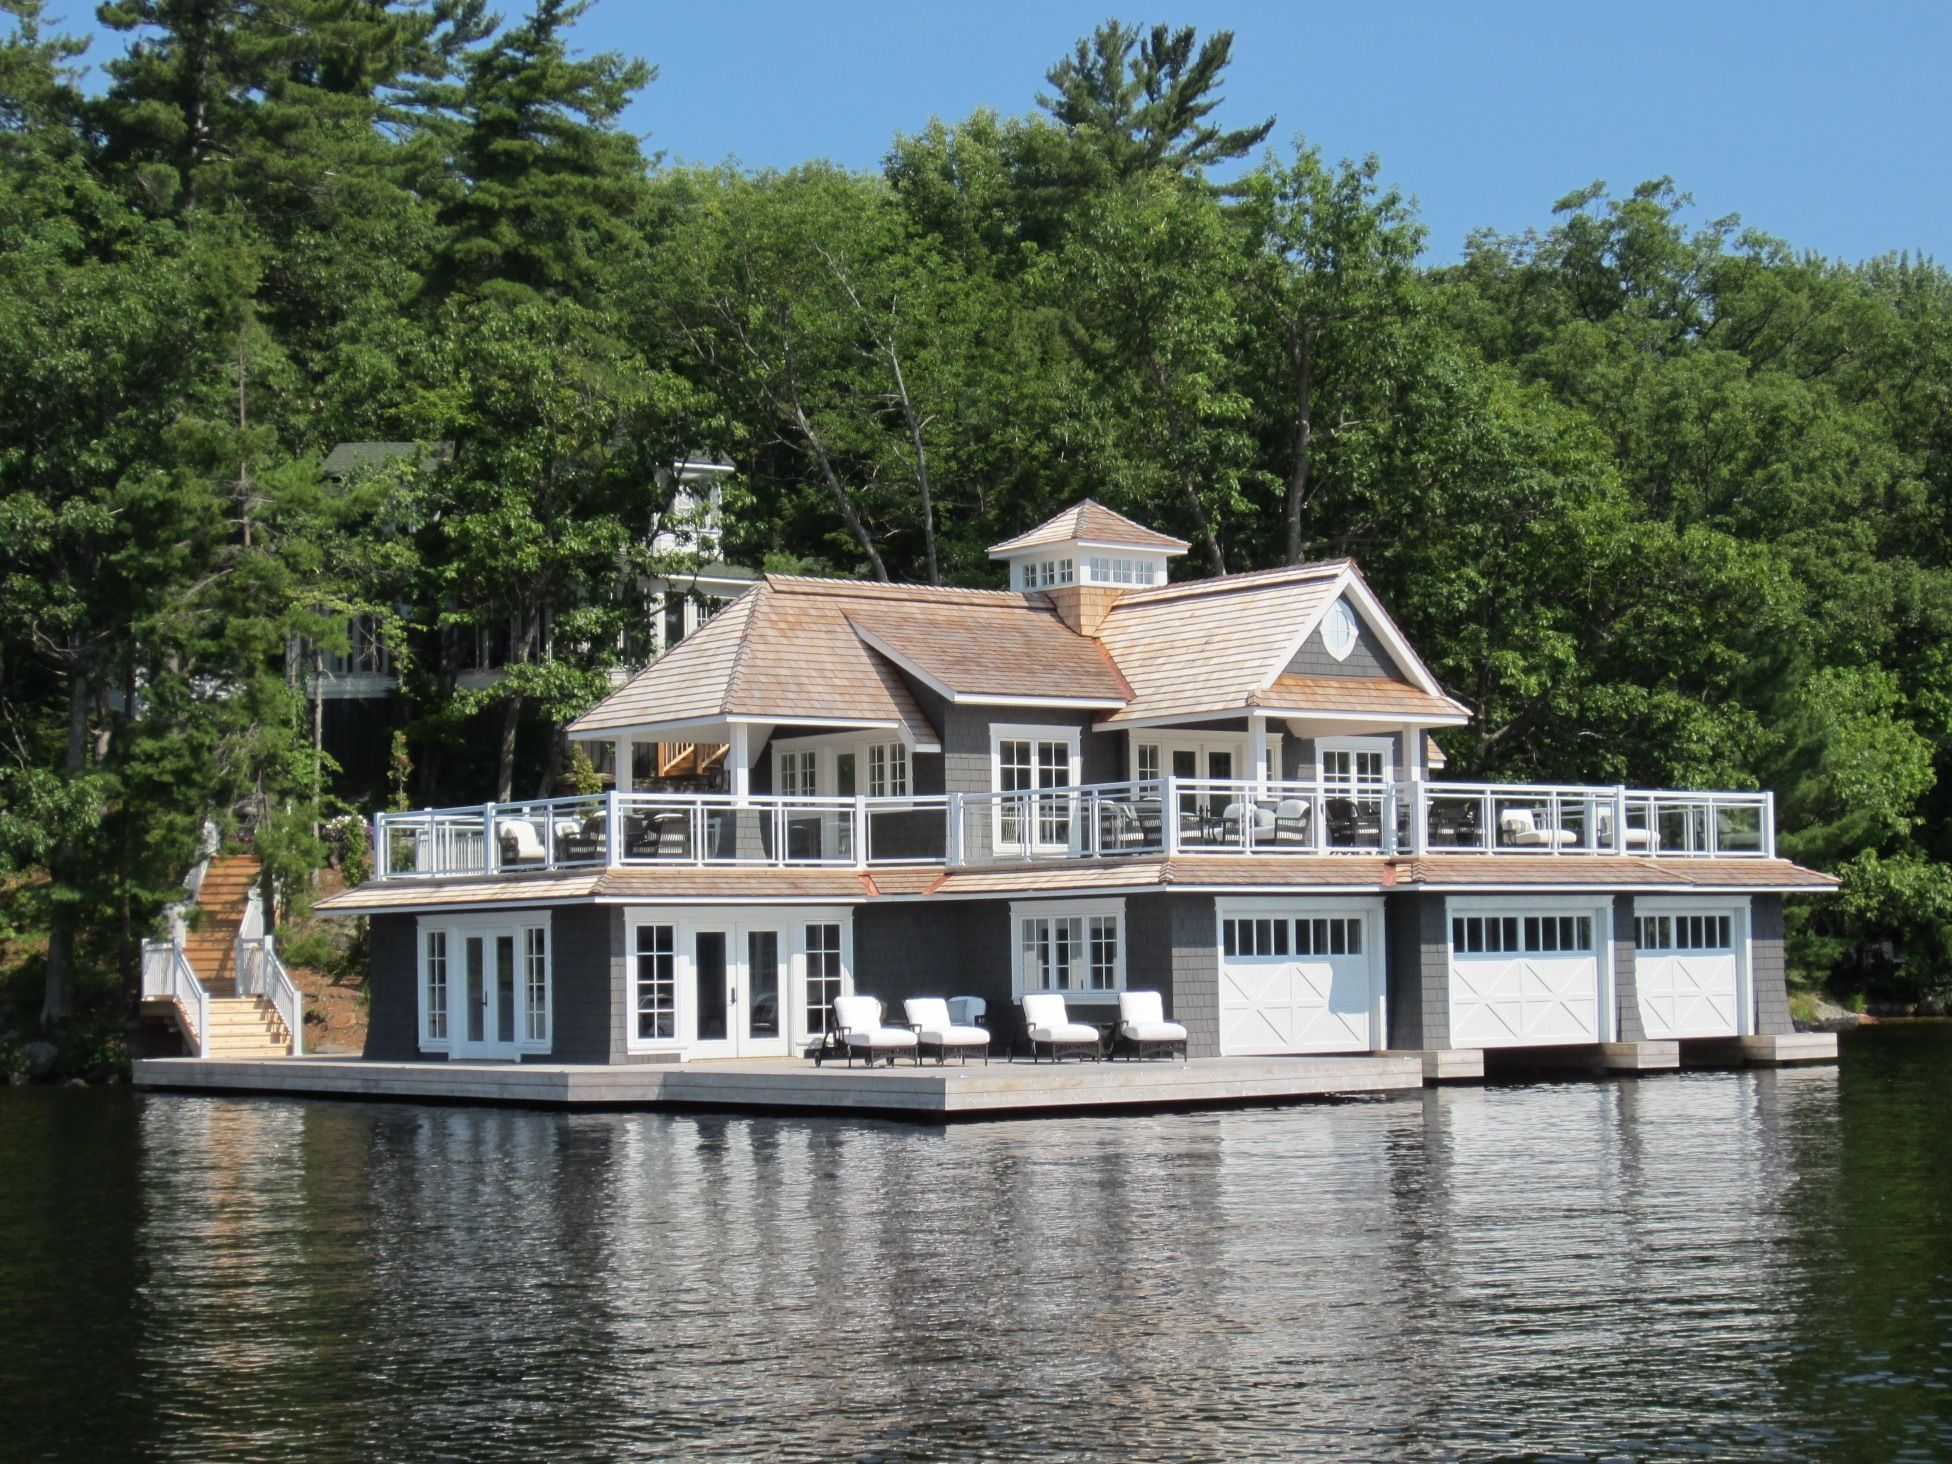 Beautiful boathouse in muskoka lakes ontario canada for Boat house plans pictures